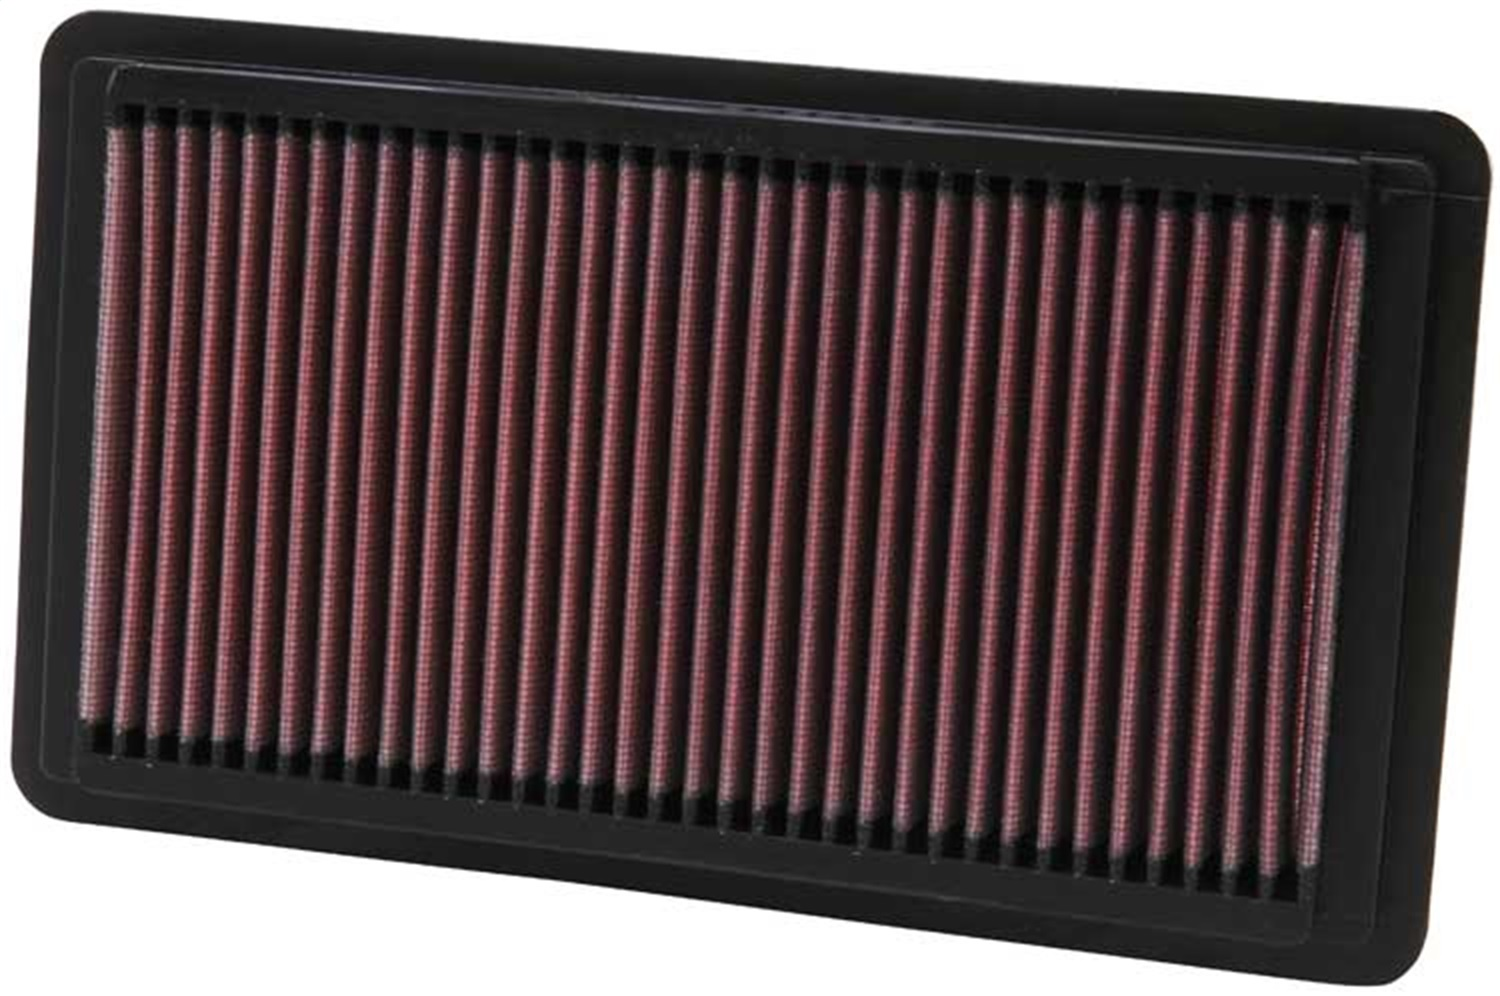 K&N Filters 33-2343 Air Filter Fits 06-11 Civic Element 33-2343